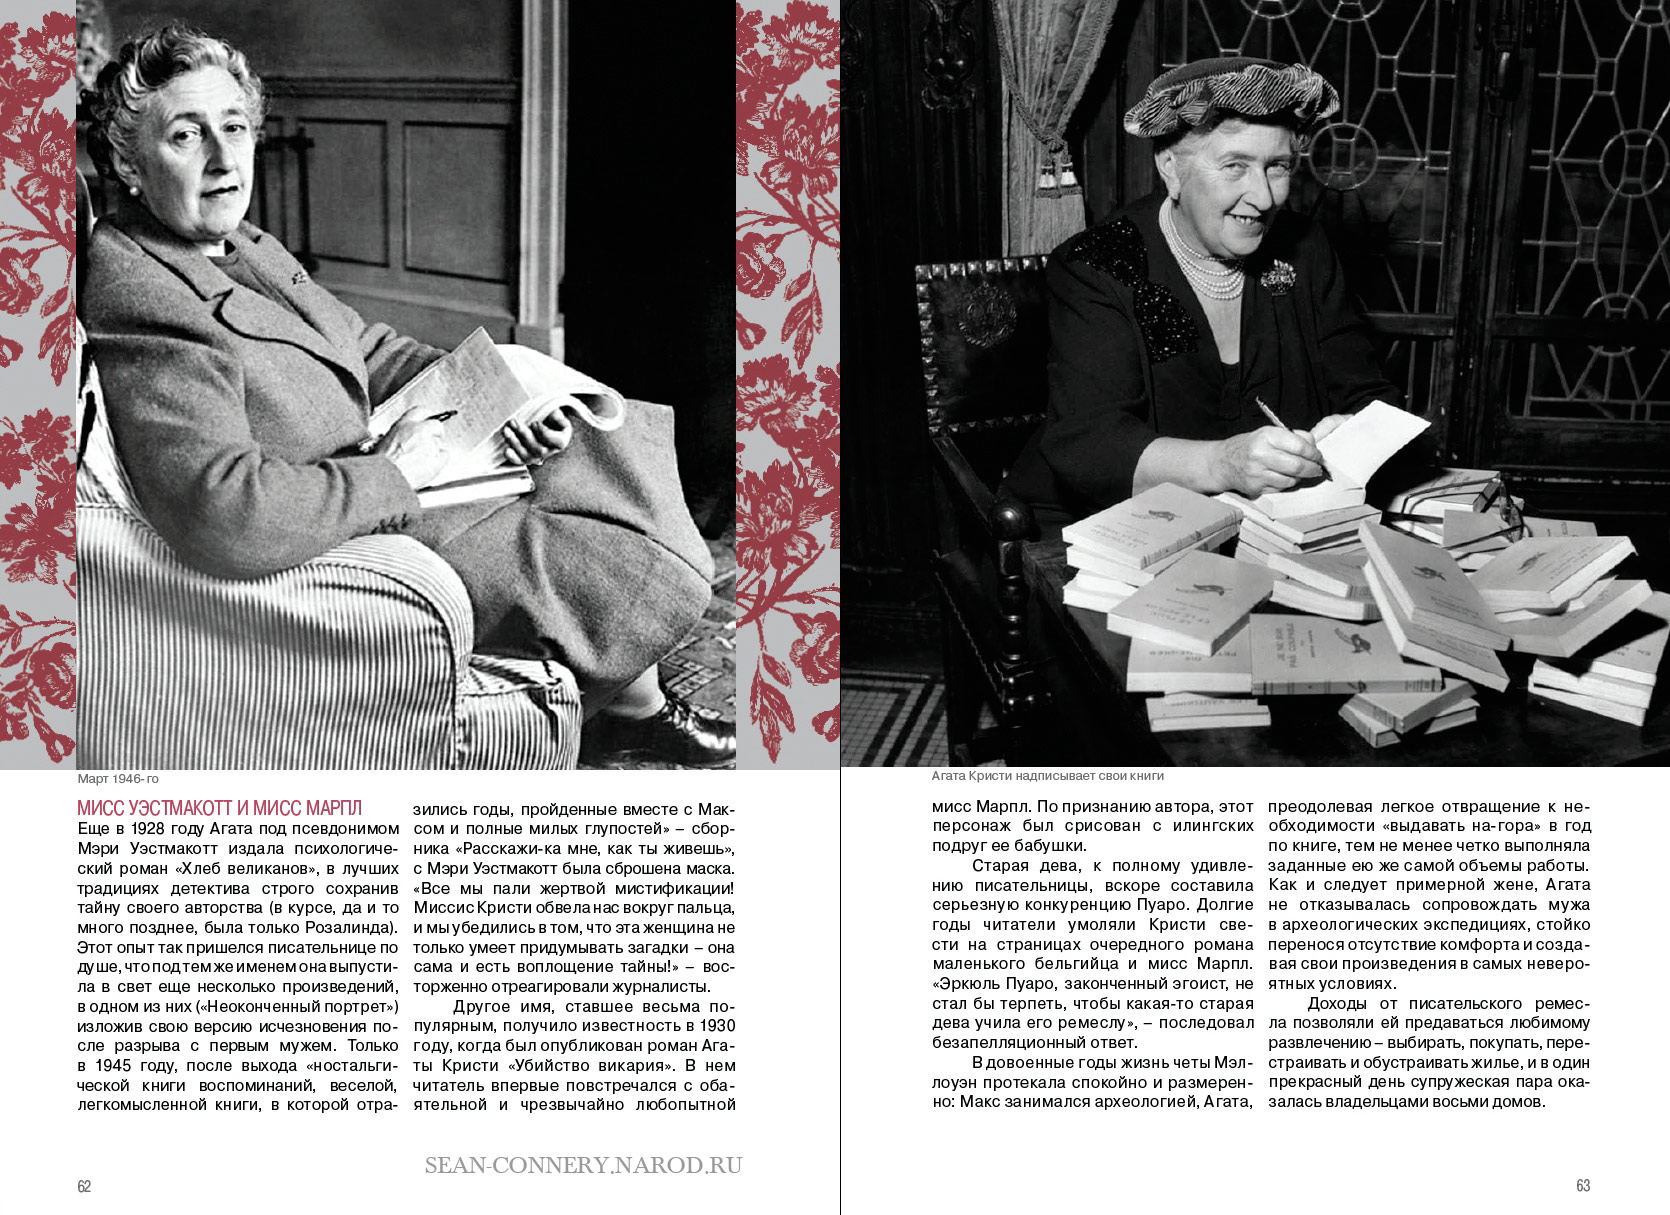 a biography of the life and times of author agatha christie Dame agatha mary clarissa christie, lady mallowan, dbe (born miller 15 september 1890 - 12 january 1976) was an english writer.